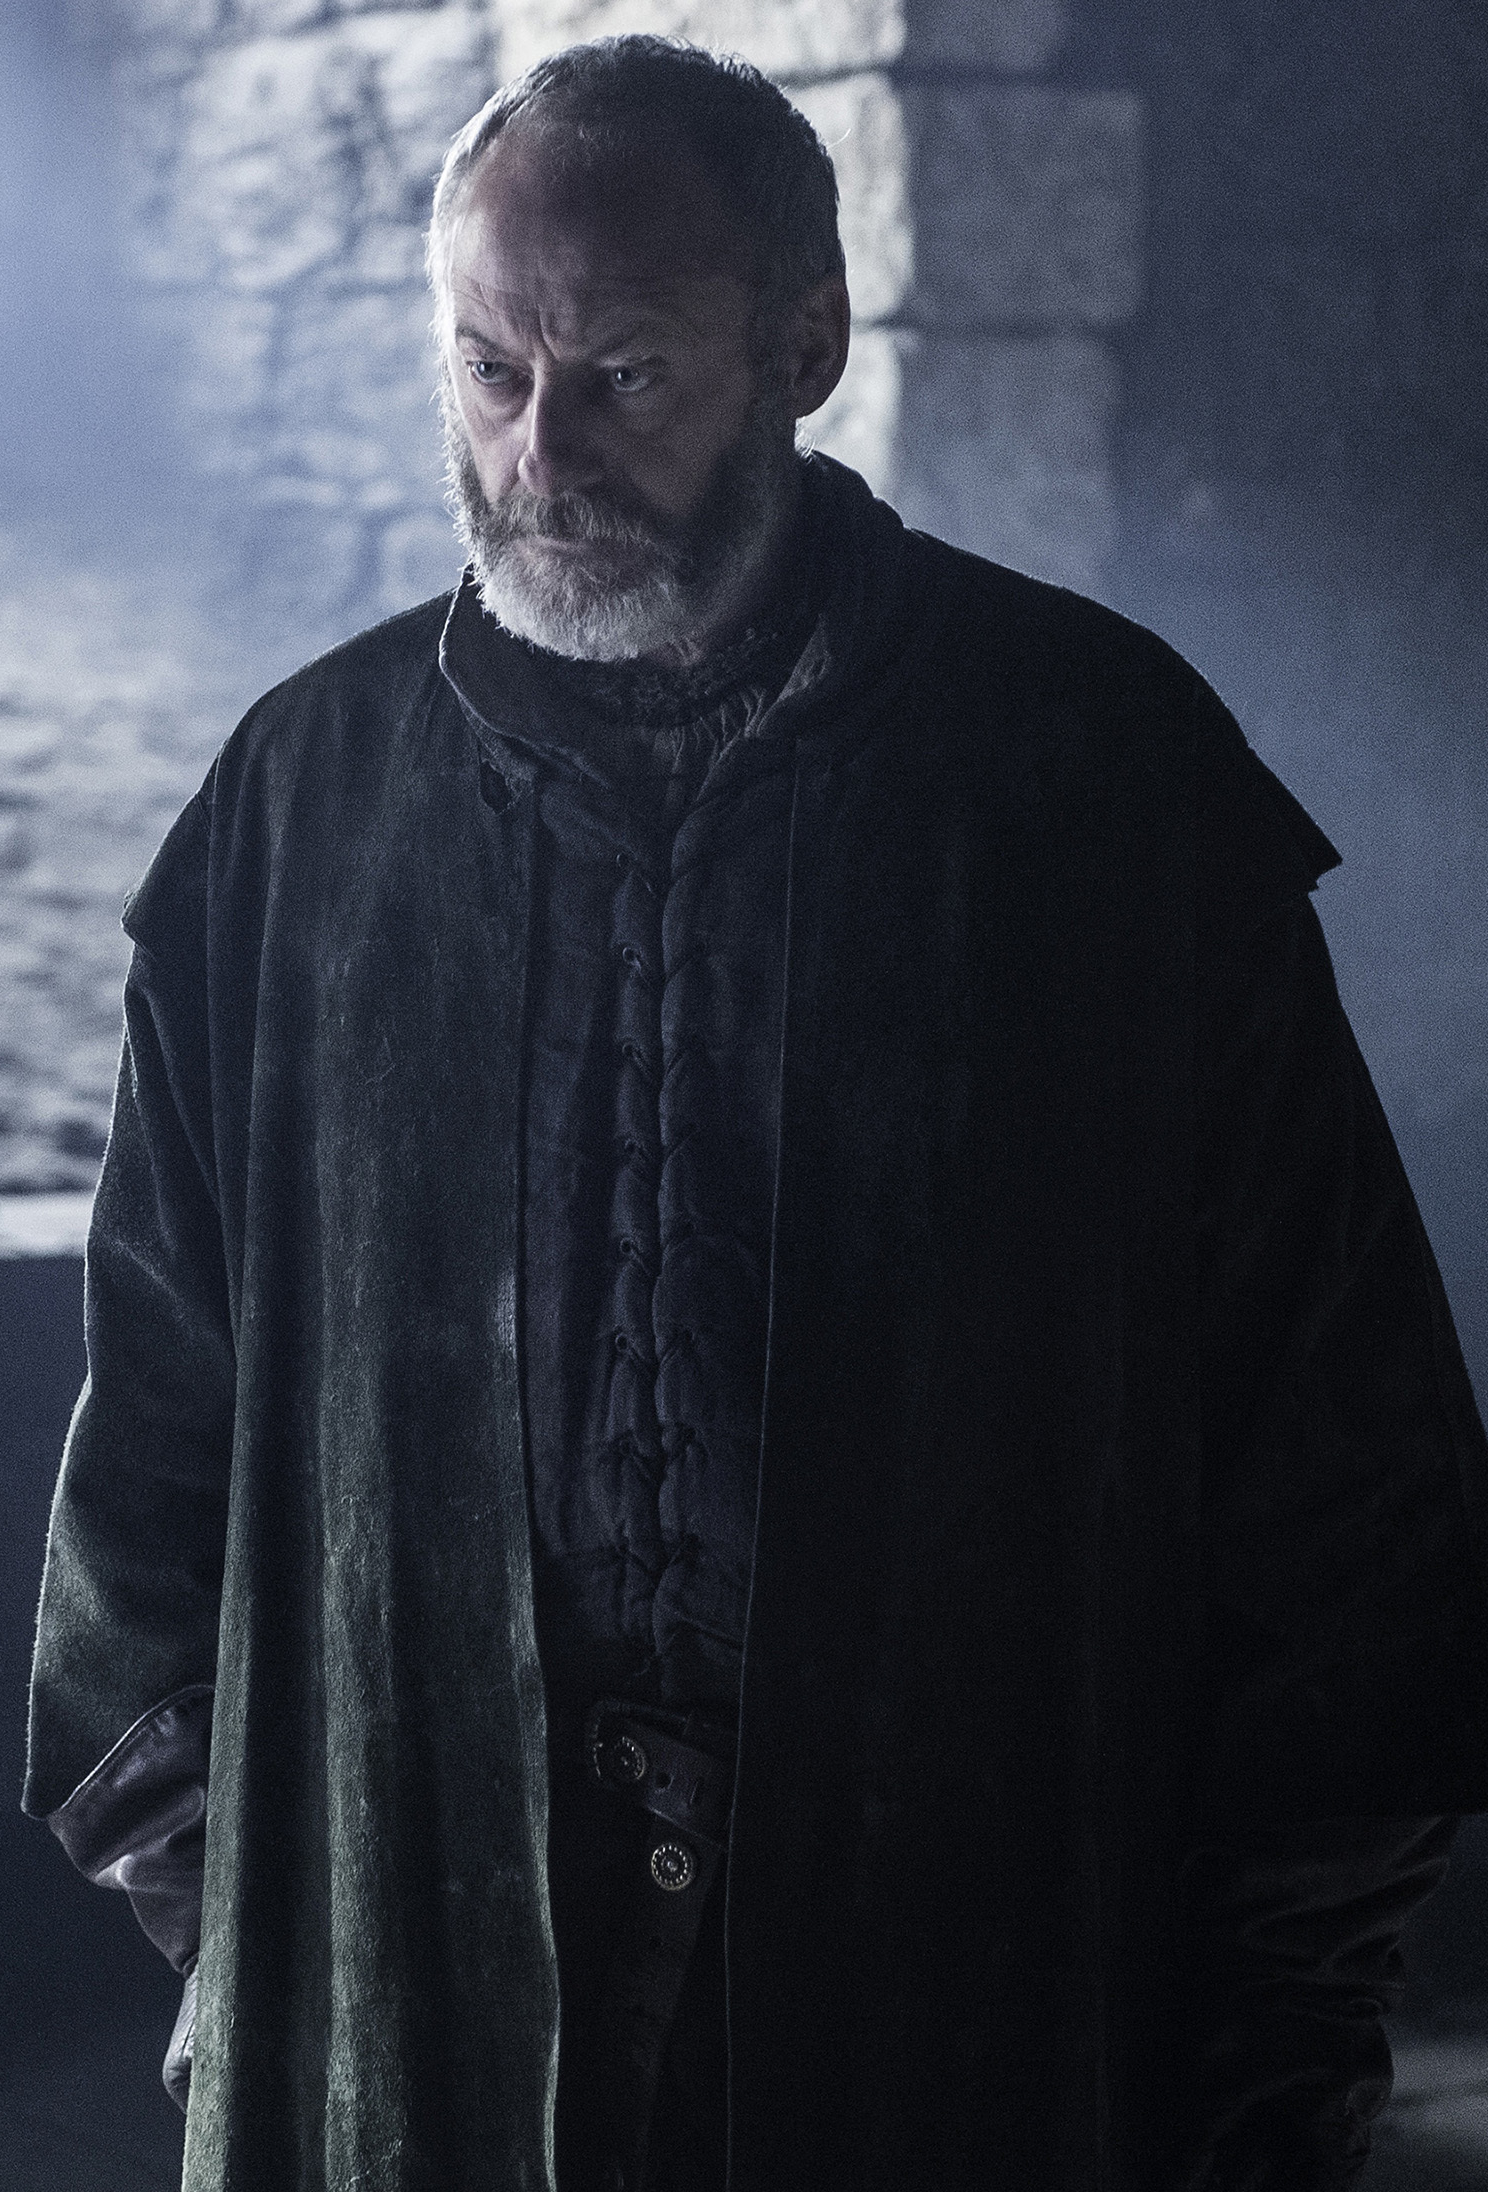 davos seewert game of thrones wiki fandom powered by wikia. Black Bedroom Furniture Sets. Home Design Ideas